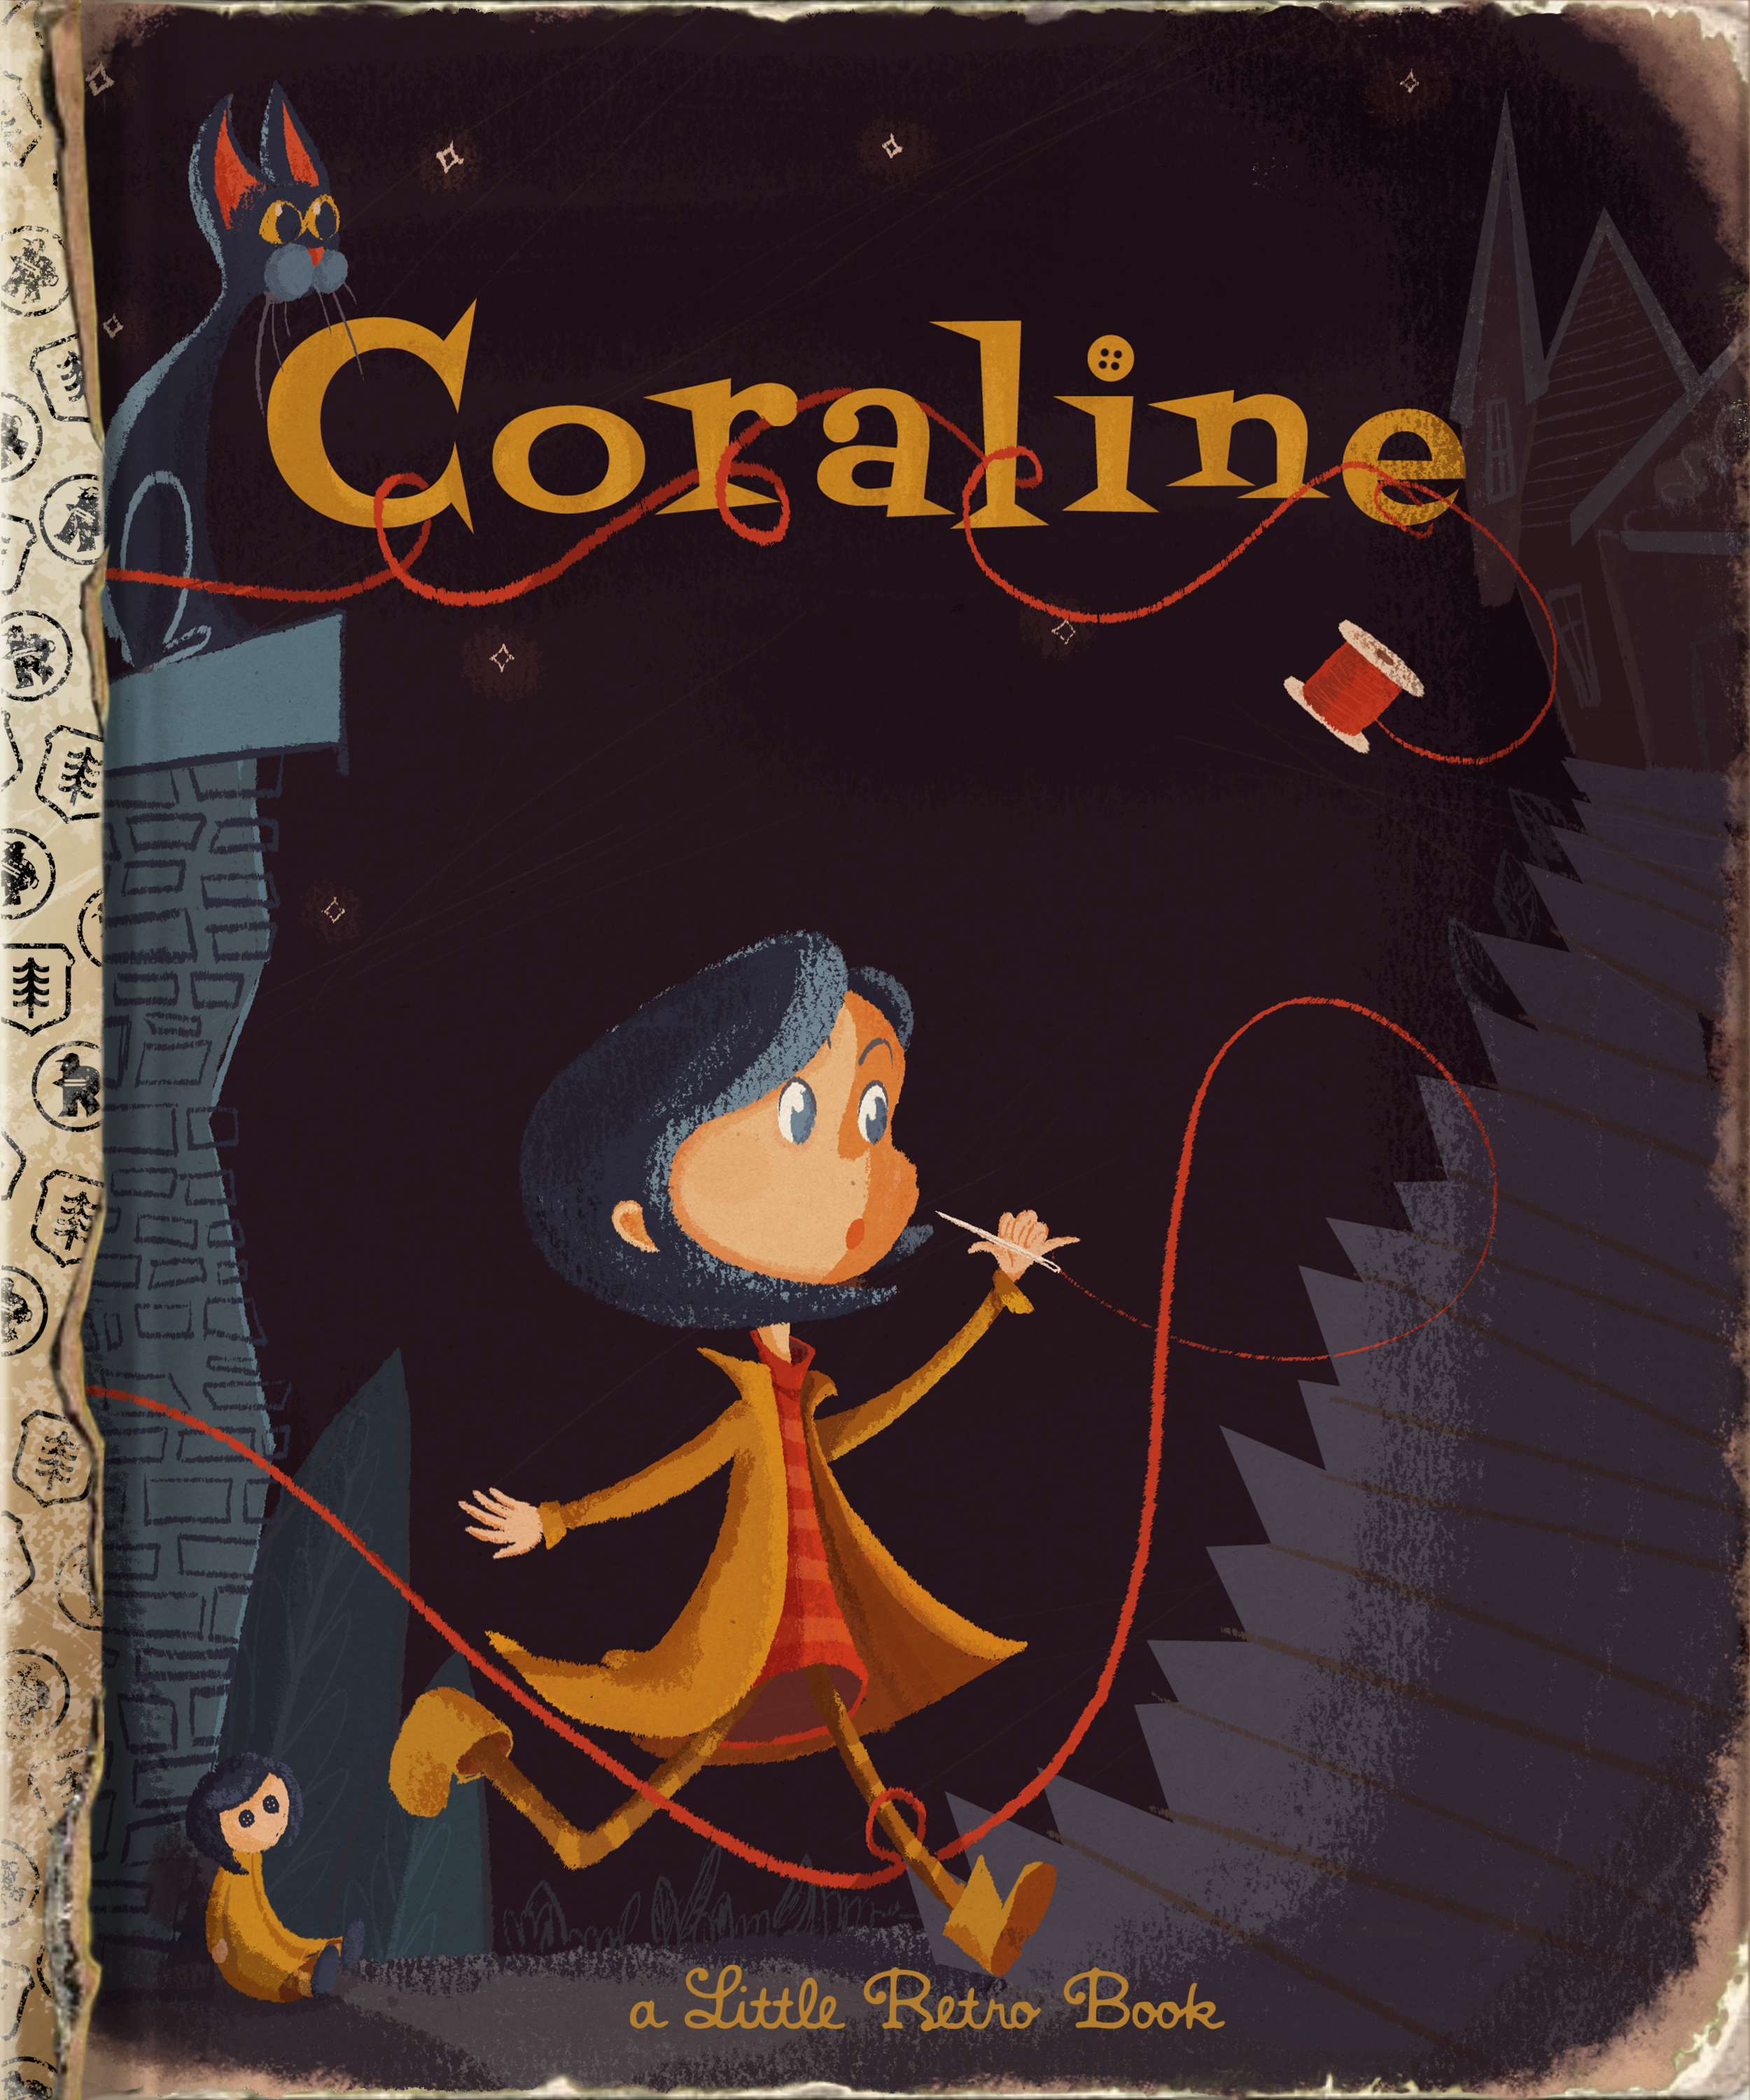 Coraline Golden Book Cover